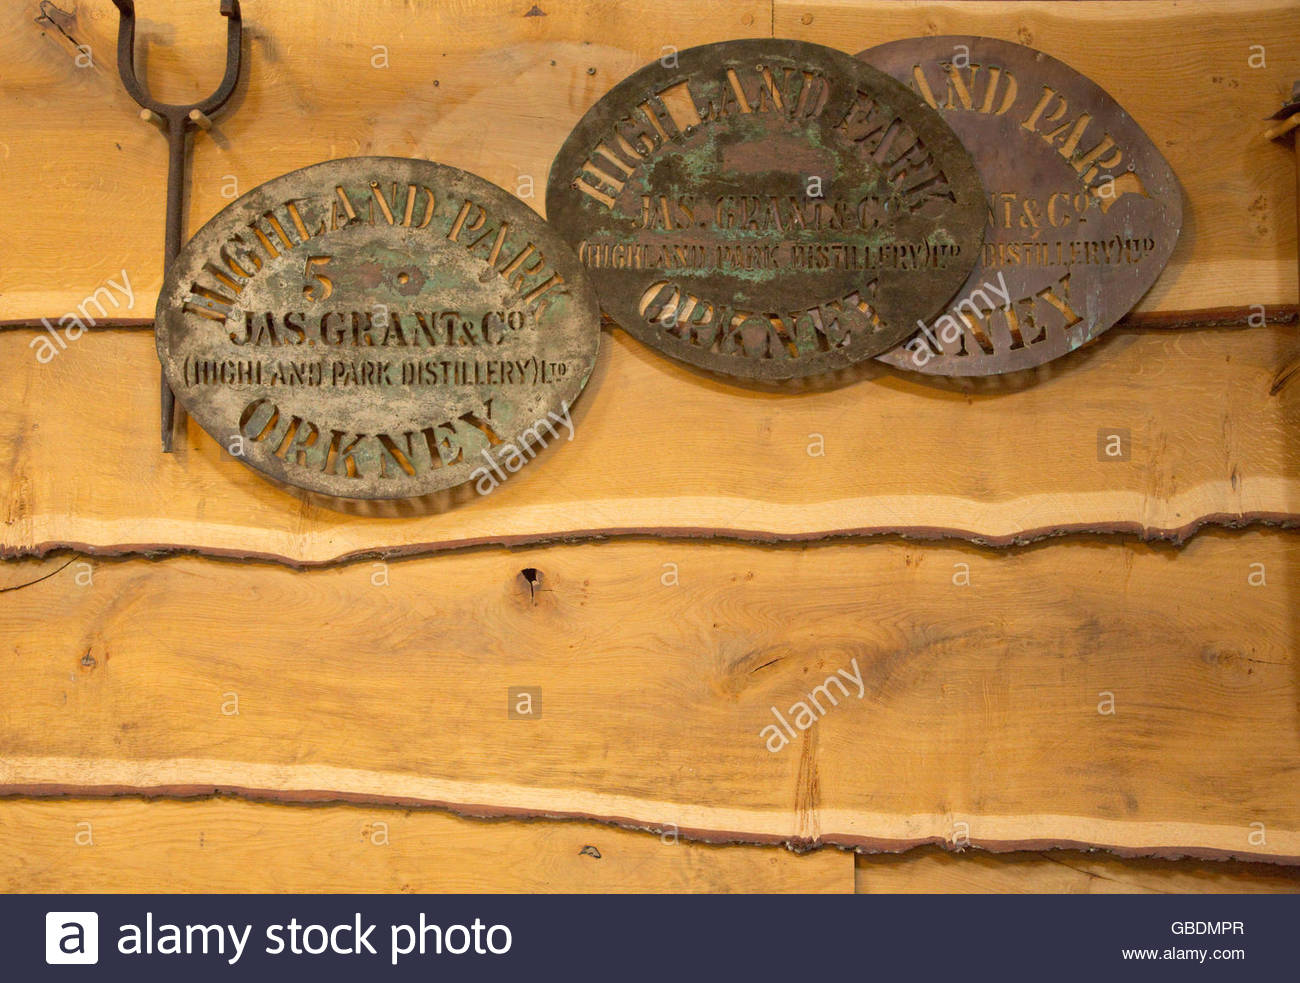 Stencils for marking the barrels at the Highland Park Distillery, Kirkwall, Mainland, Orkney, Scotland. - Stock Image